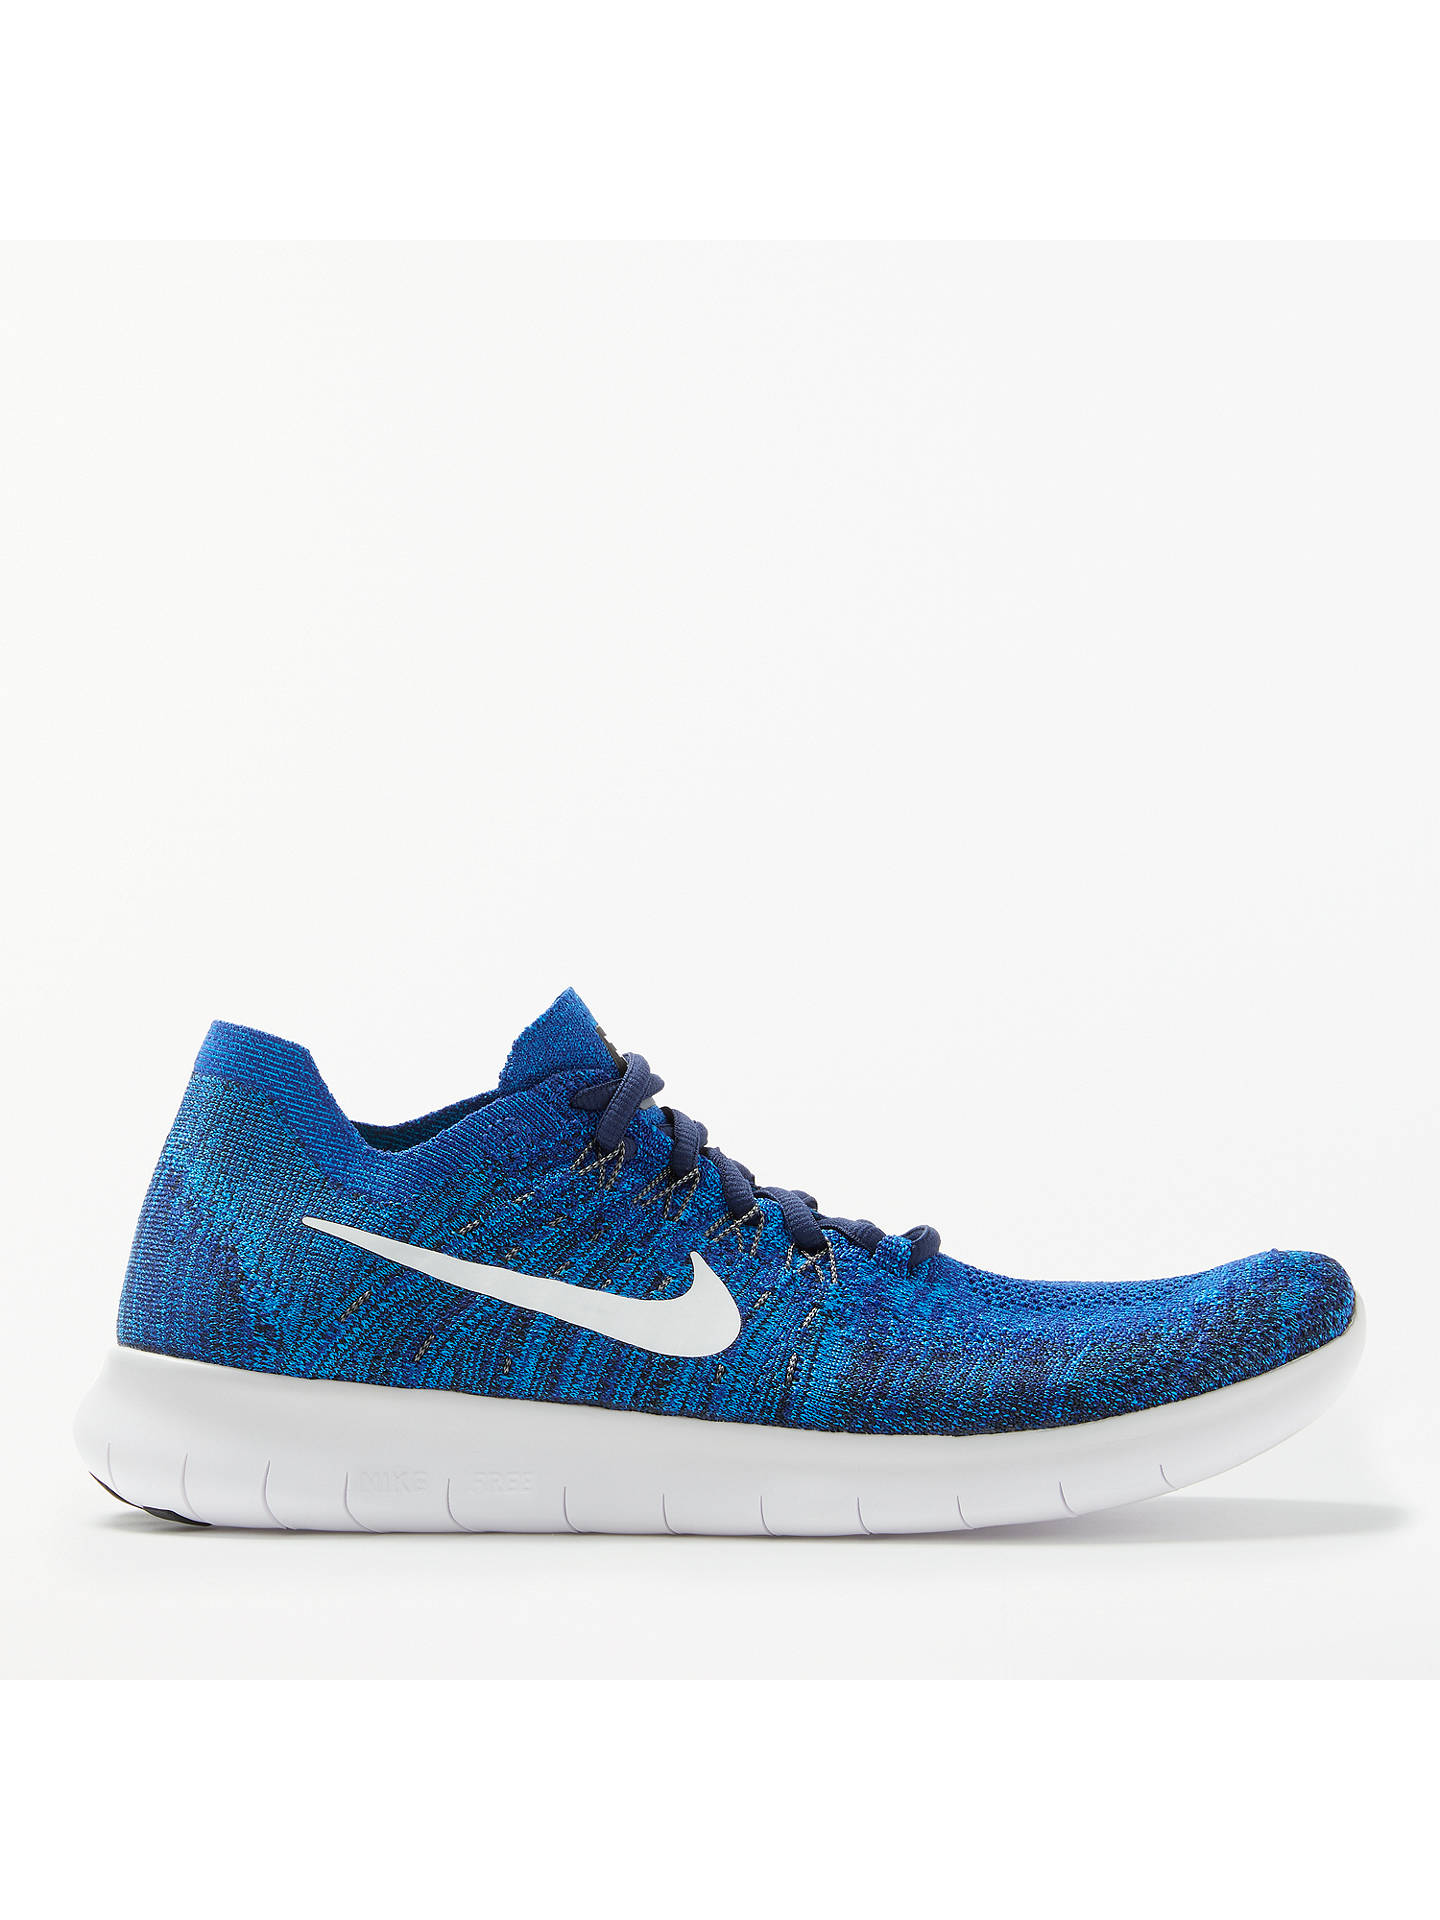 d7b02b09ce8 Nike Free RN Flyknit 2017 Men s Running Shoes at John Lewis   Partners